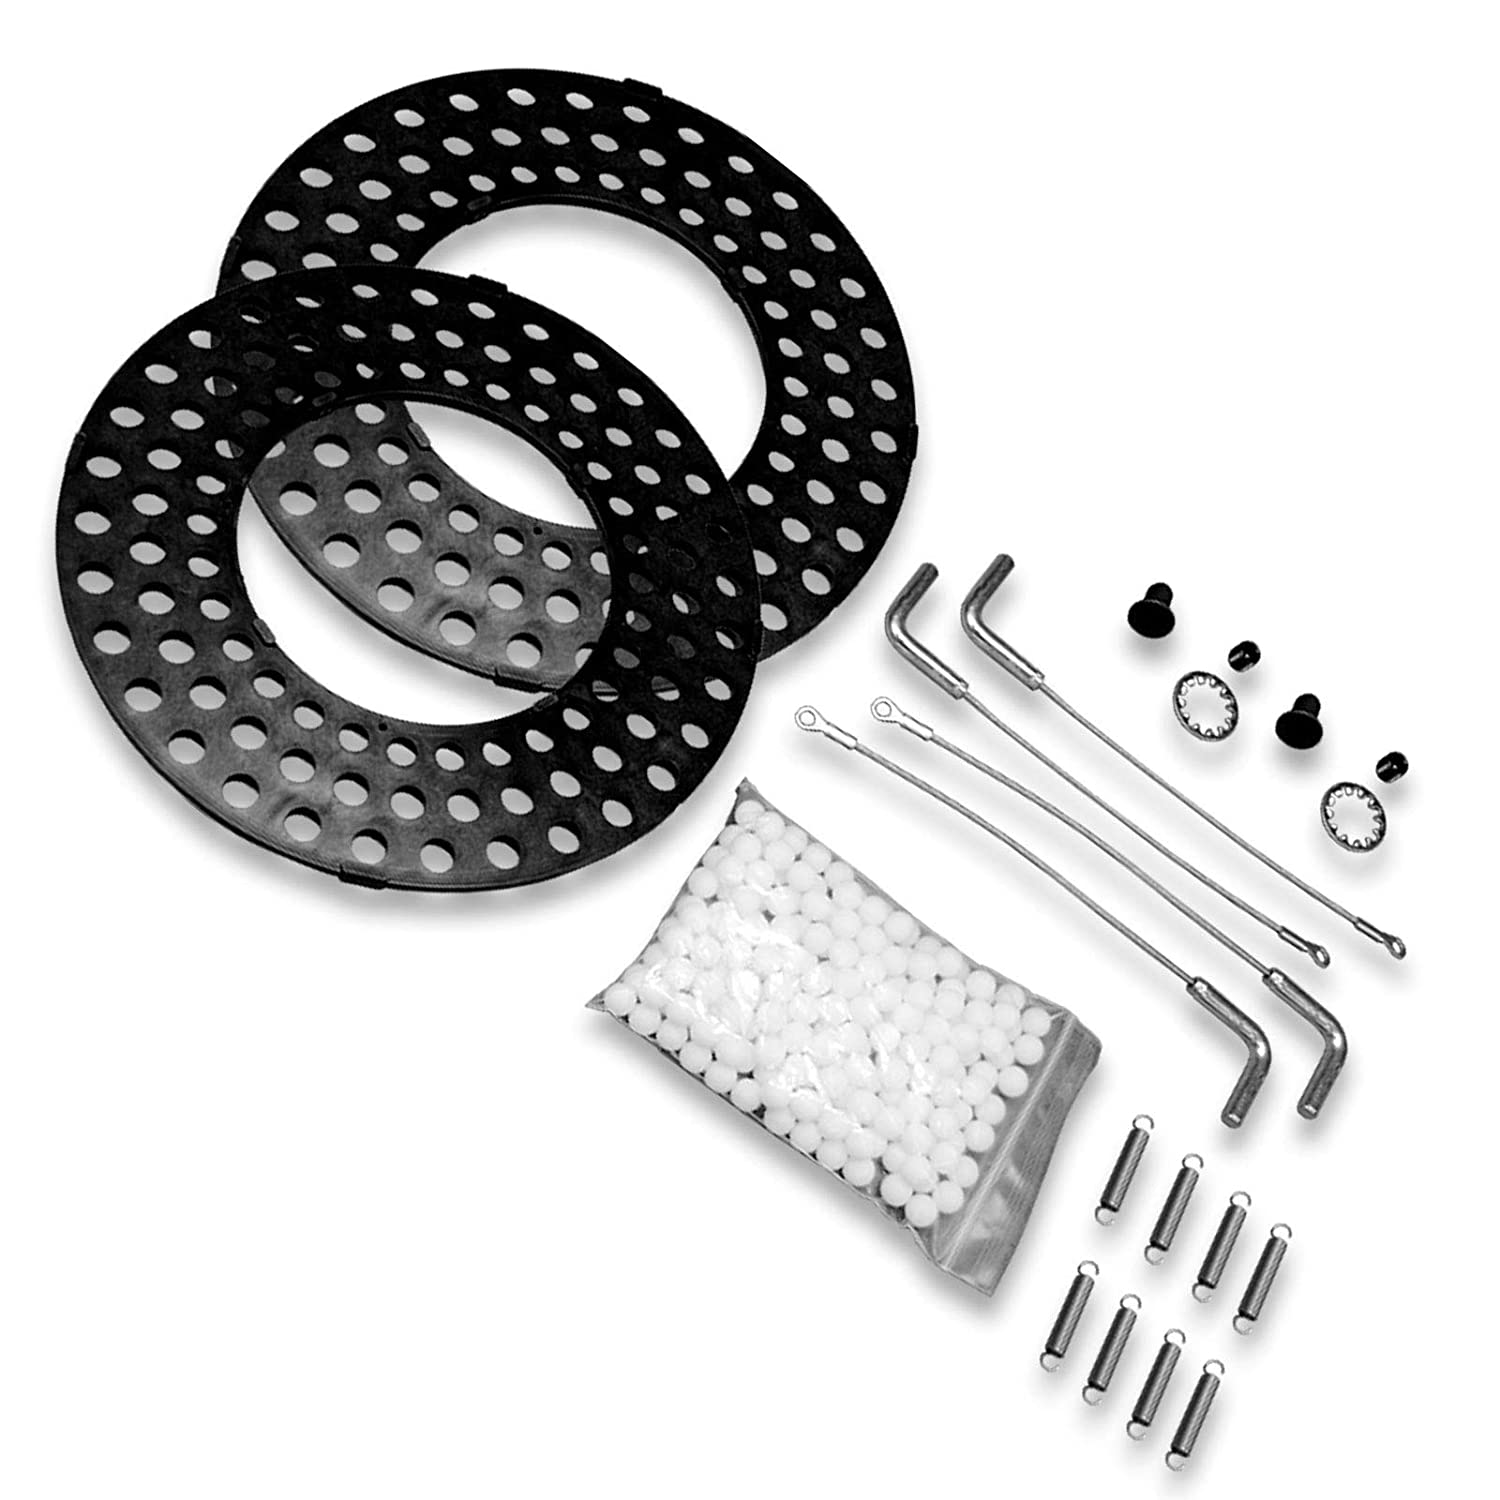 Heavy Duty Truck Alignment Rack Turn Plate//Table Repair Kit Stainless Steel Hardware with Lock Pins